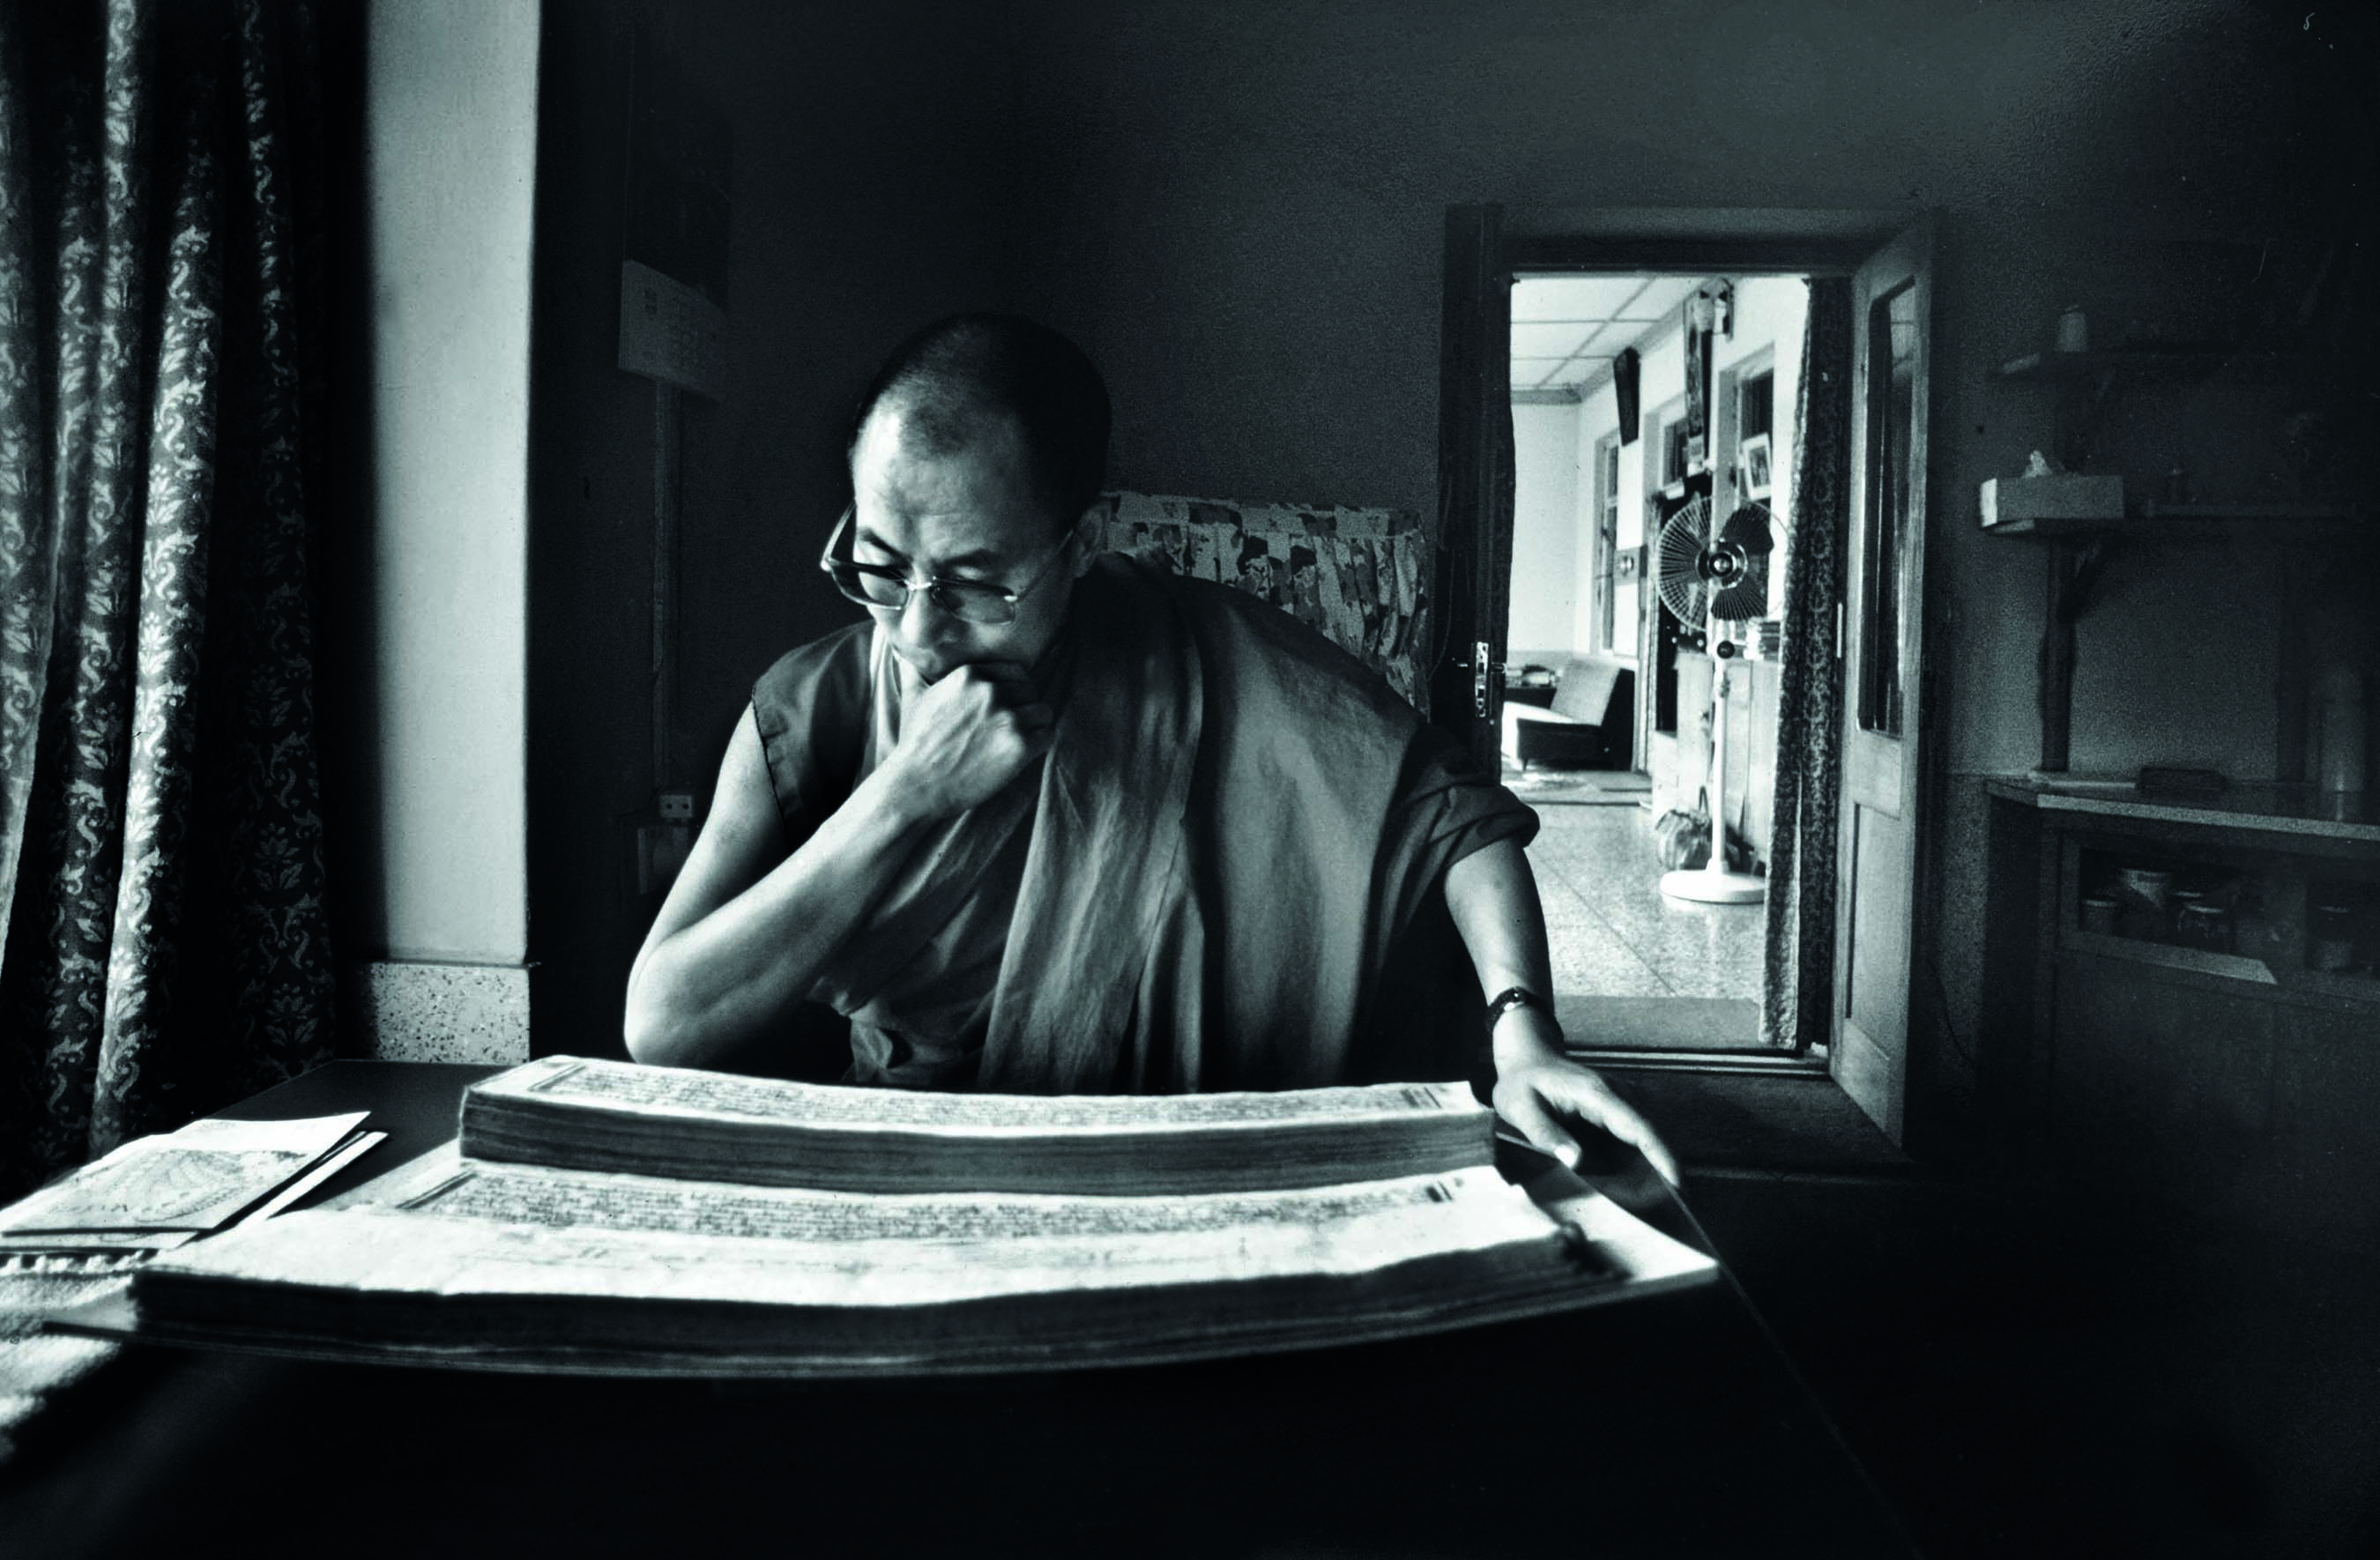 The Dalai Lama's everyday life captured by India's most iconic photojournalist